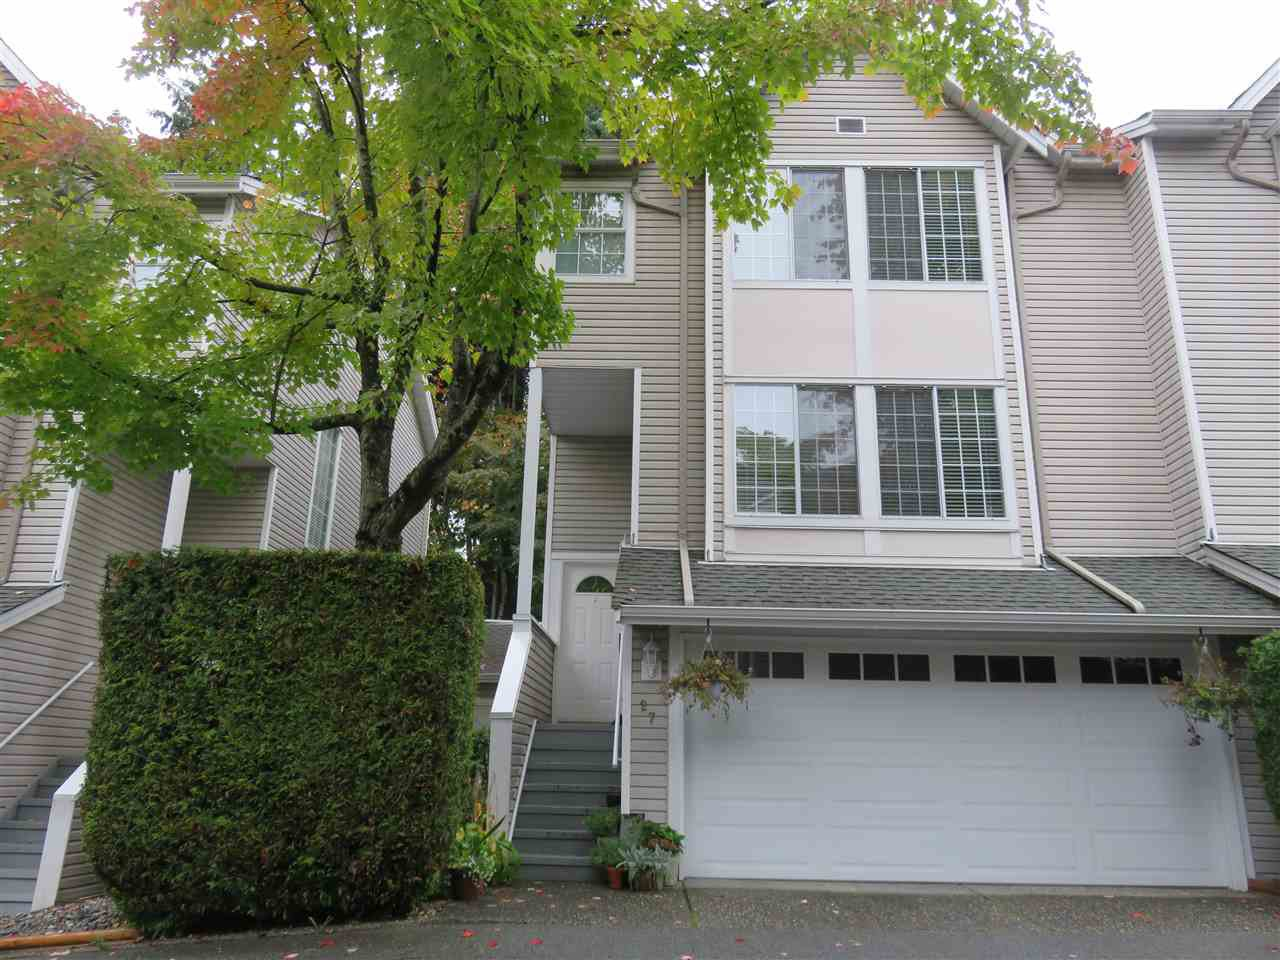 Main Photo: 27 2600 BEAVERBROOK CRESCENT in Burnaby: Simon Fraser Hills Townhouse for sale (Burnaby North)  : MLS®# R2411470